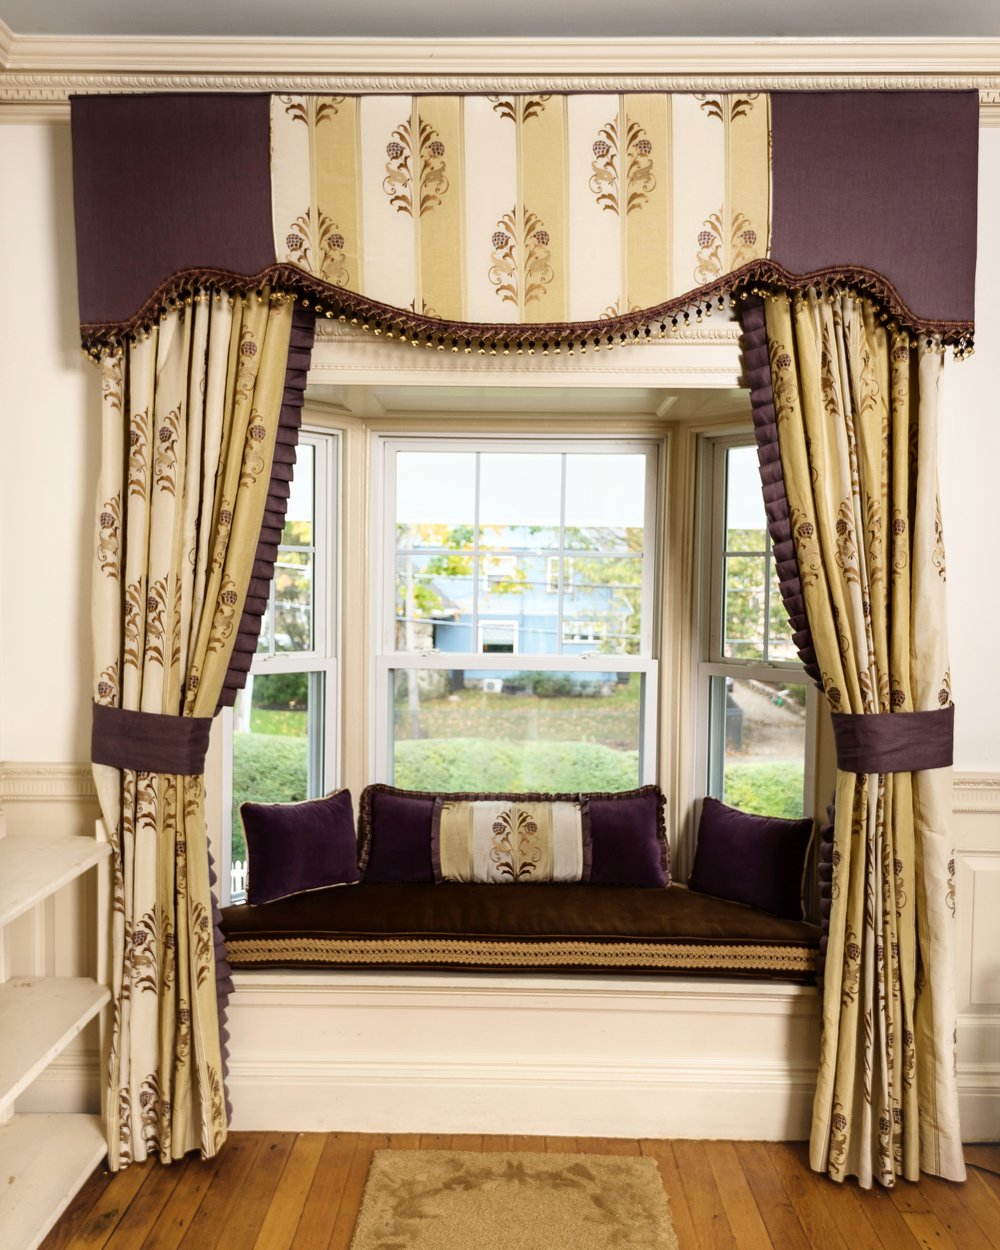 window-treatments-blinds-drapery-cornices-bedding-linens-windham-haverhill-13.jpg